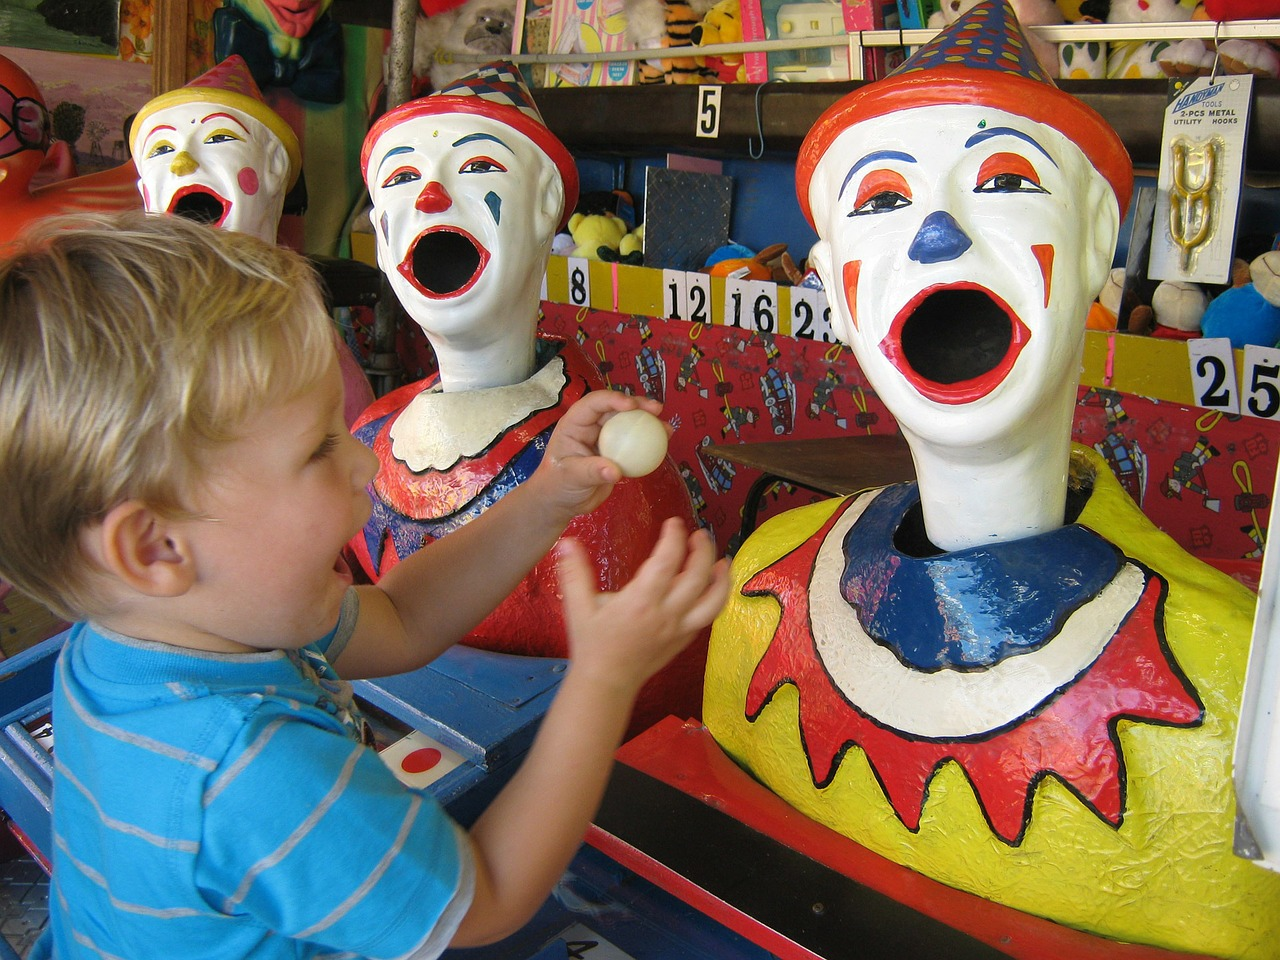 clowns, fun fair, carnival